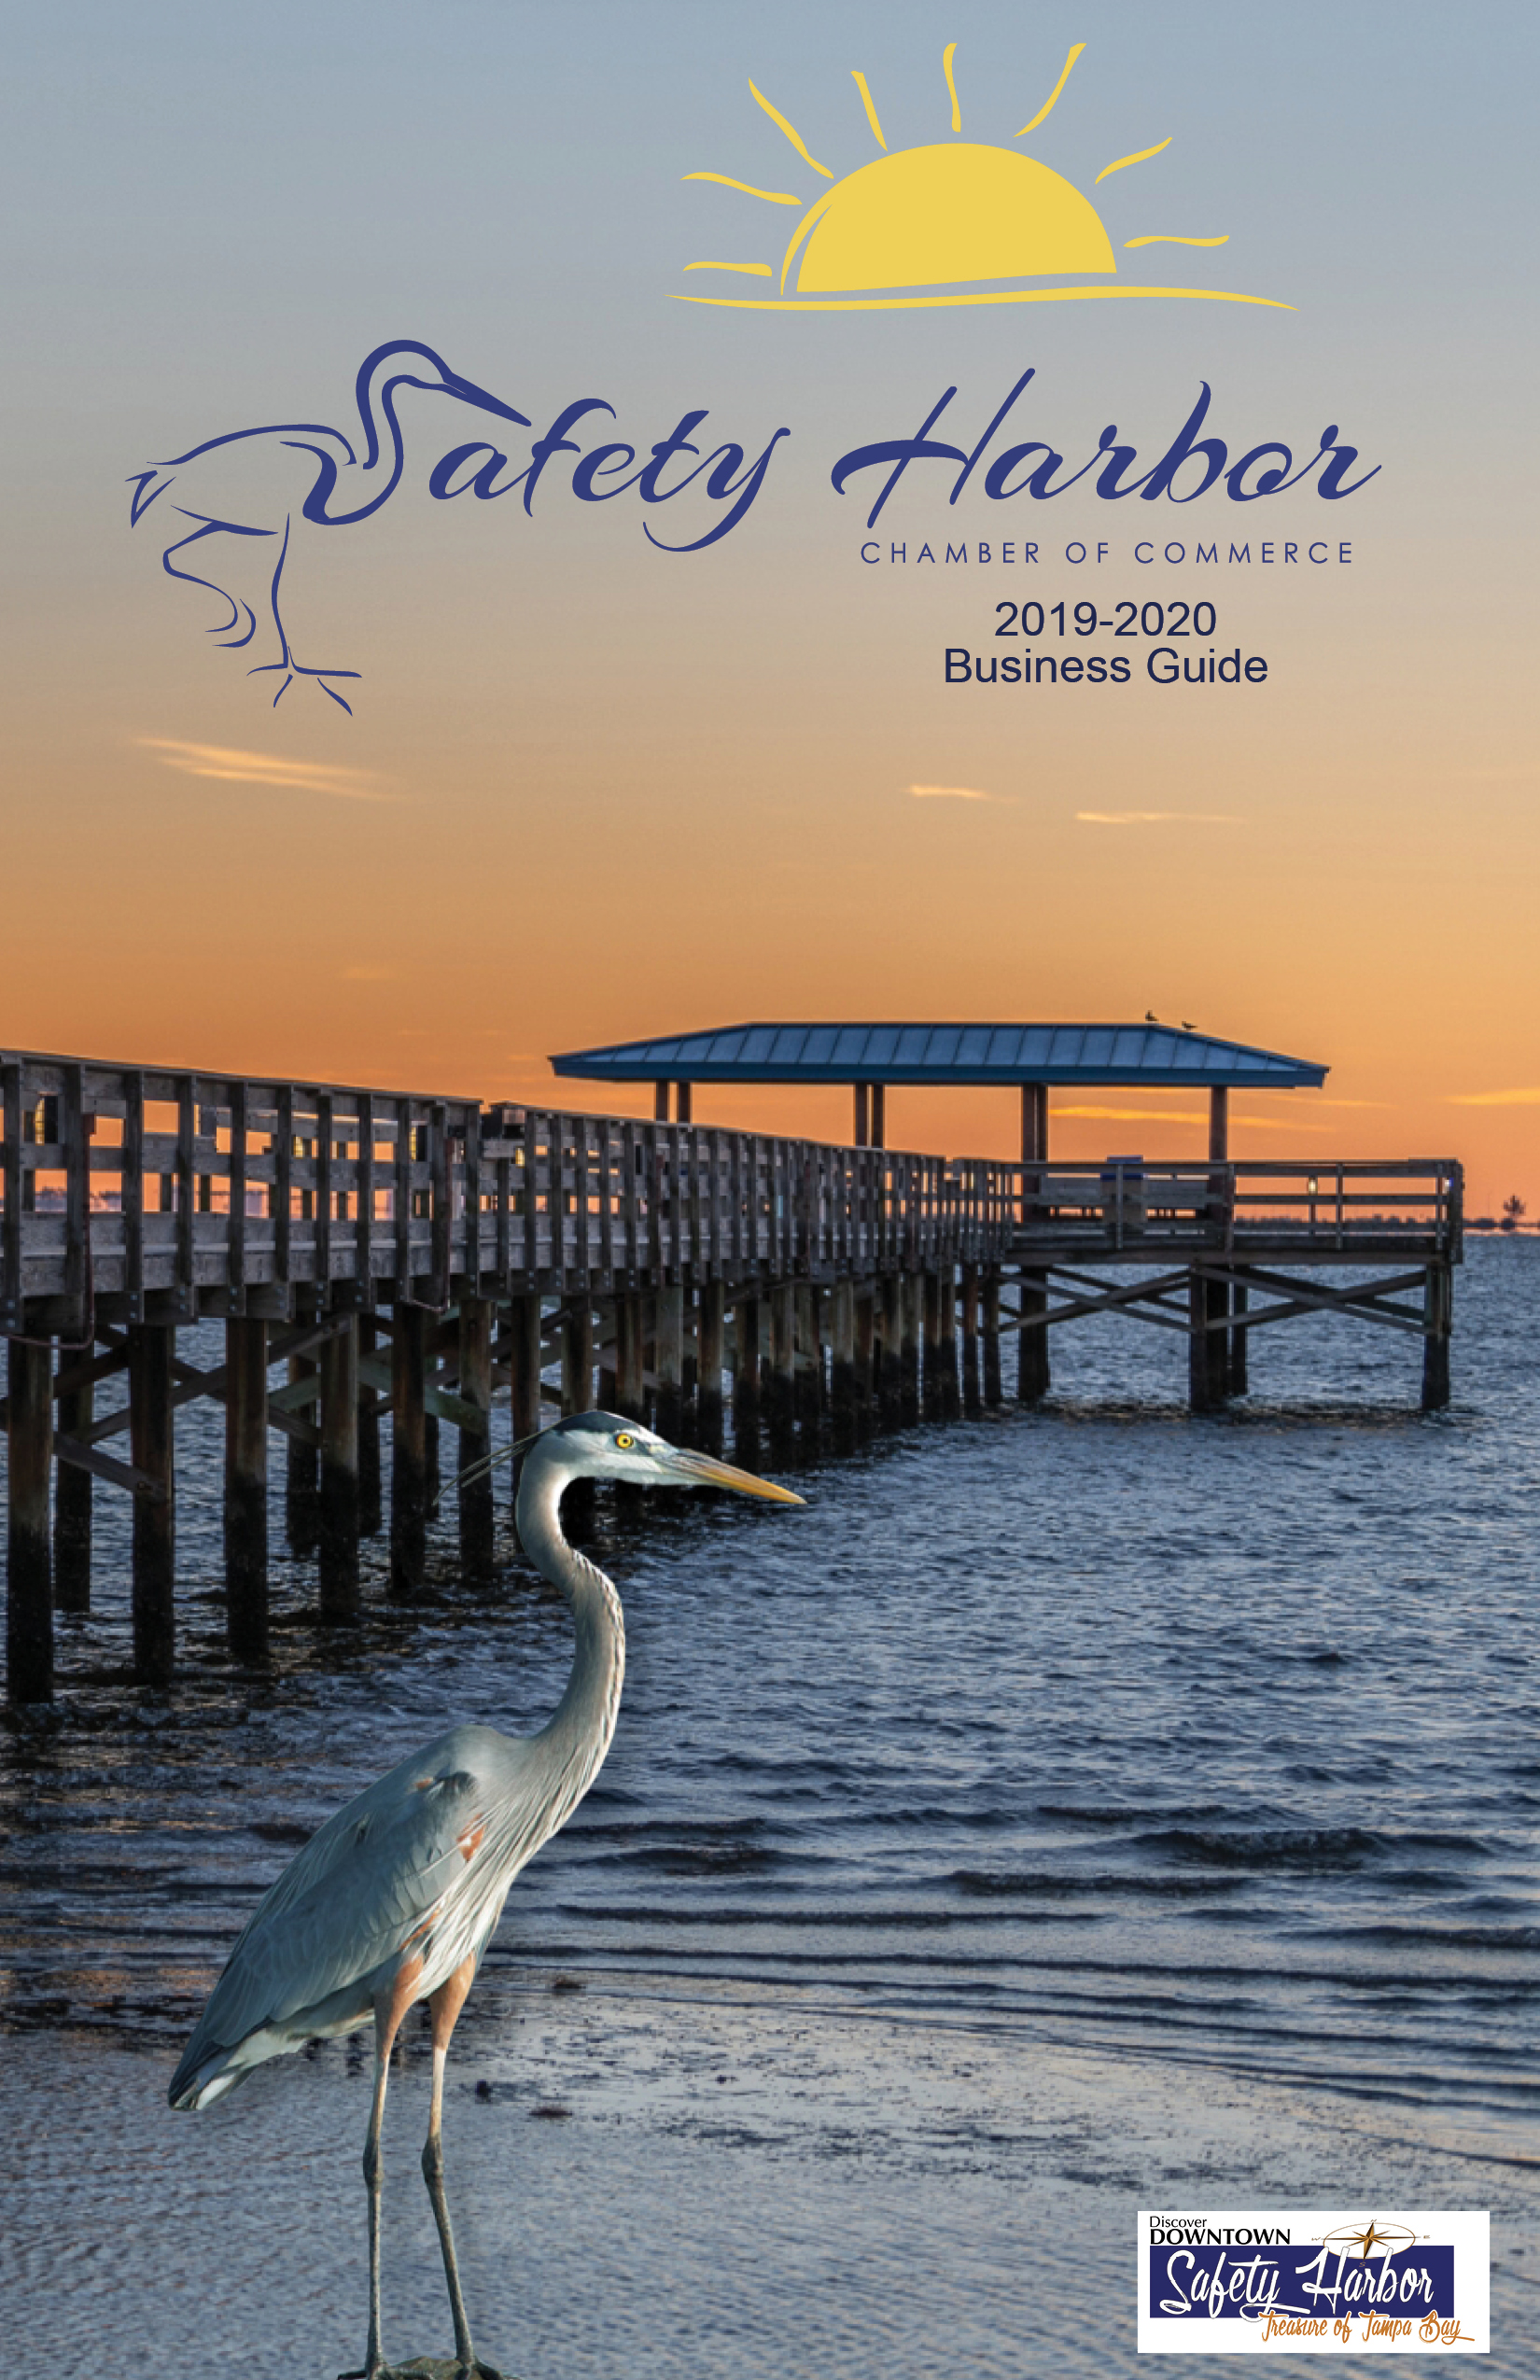 Safety Harbor Business Guide 2019-2020